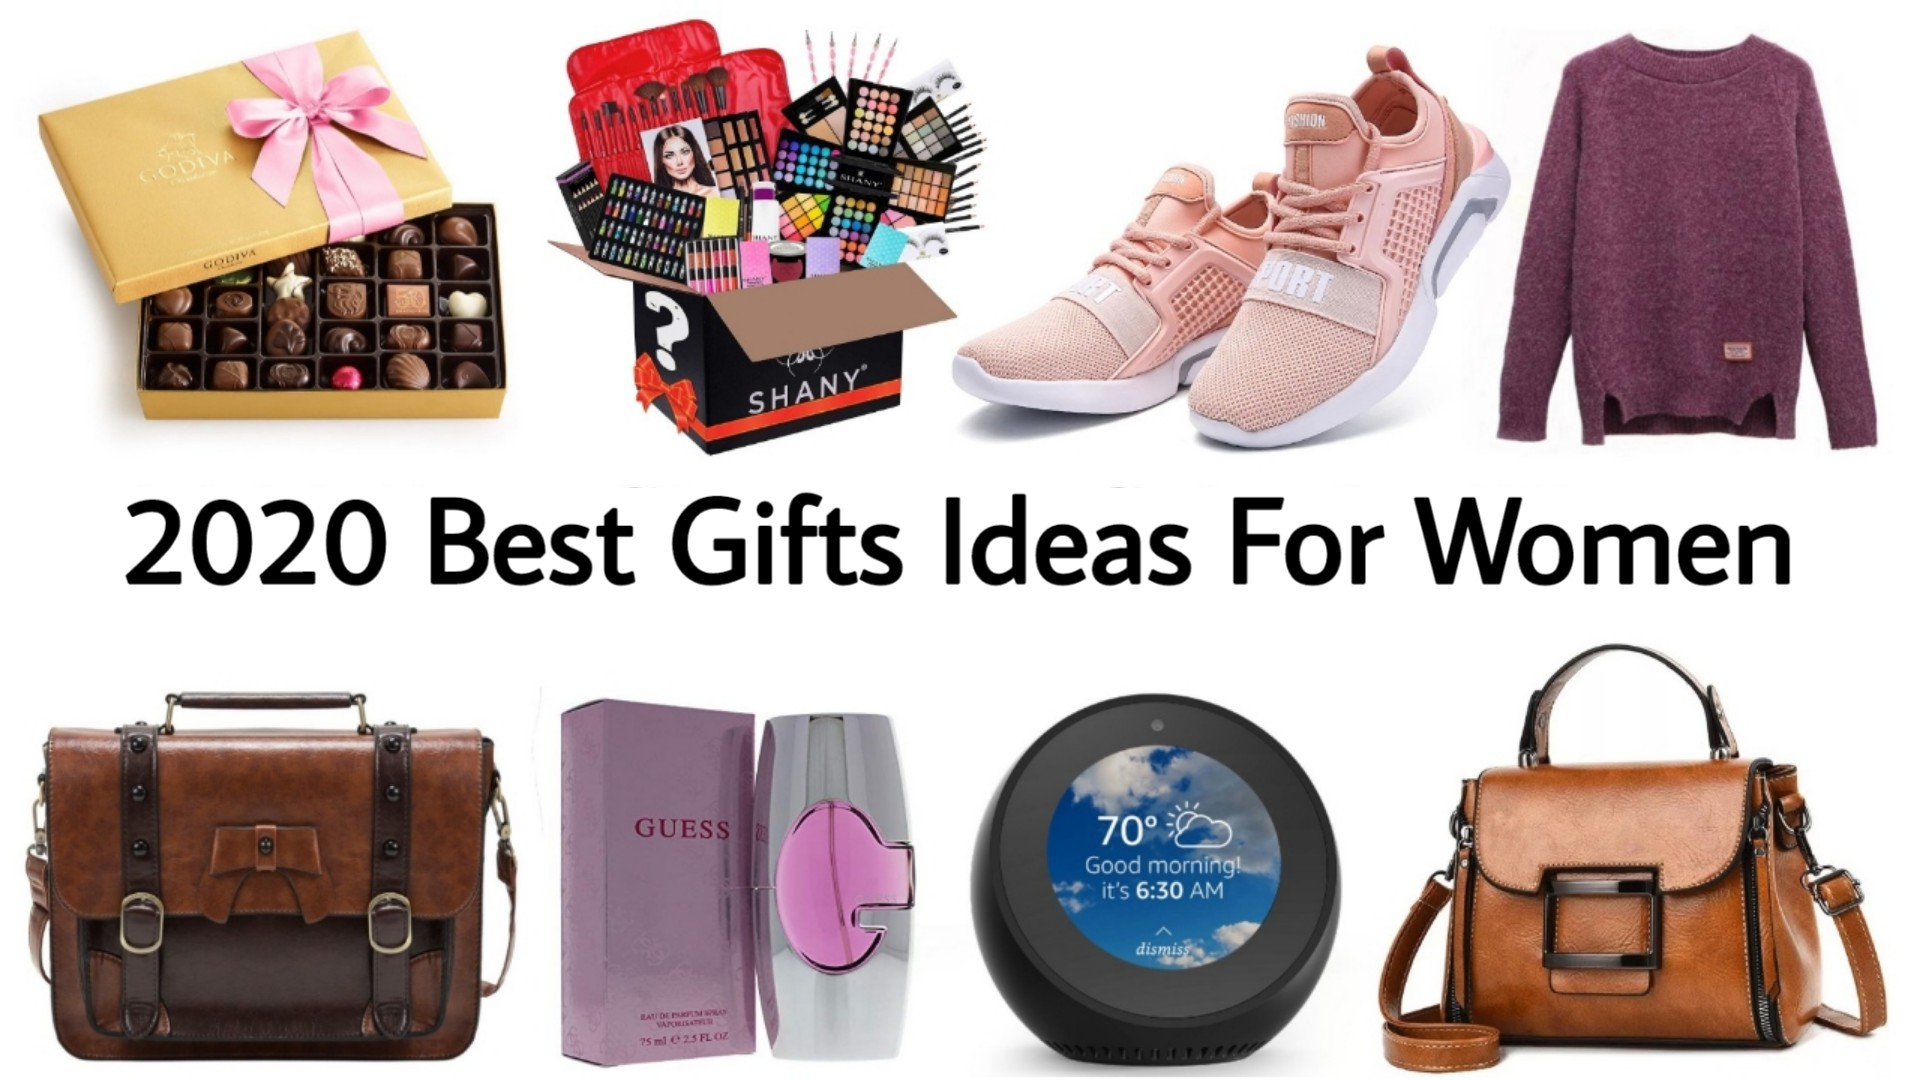 Best Christmas Gifts for Women 2020 | Best Birthday Gifts for Women 2020